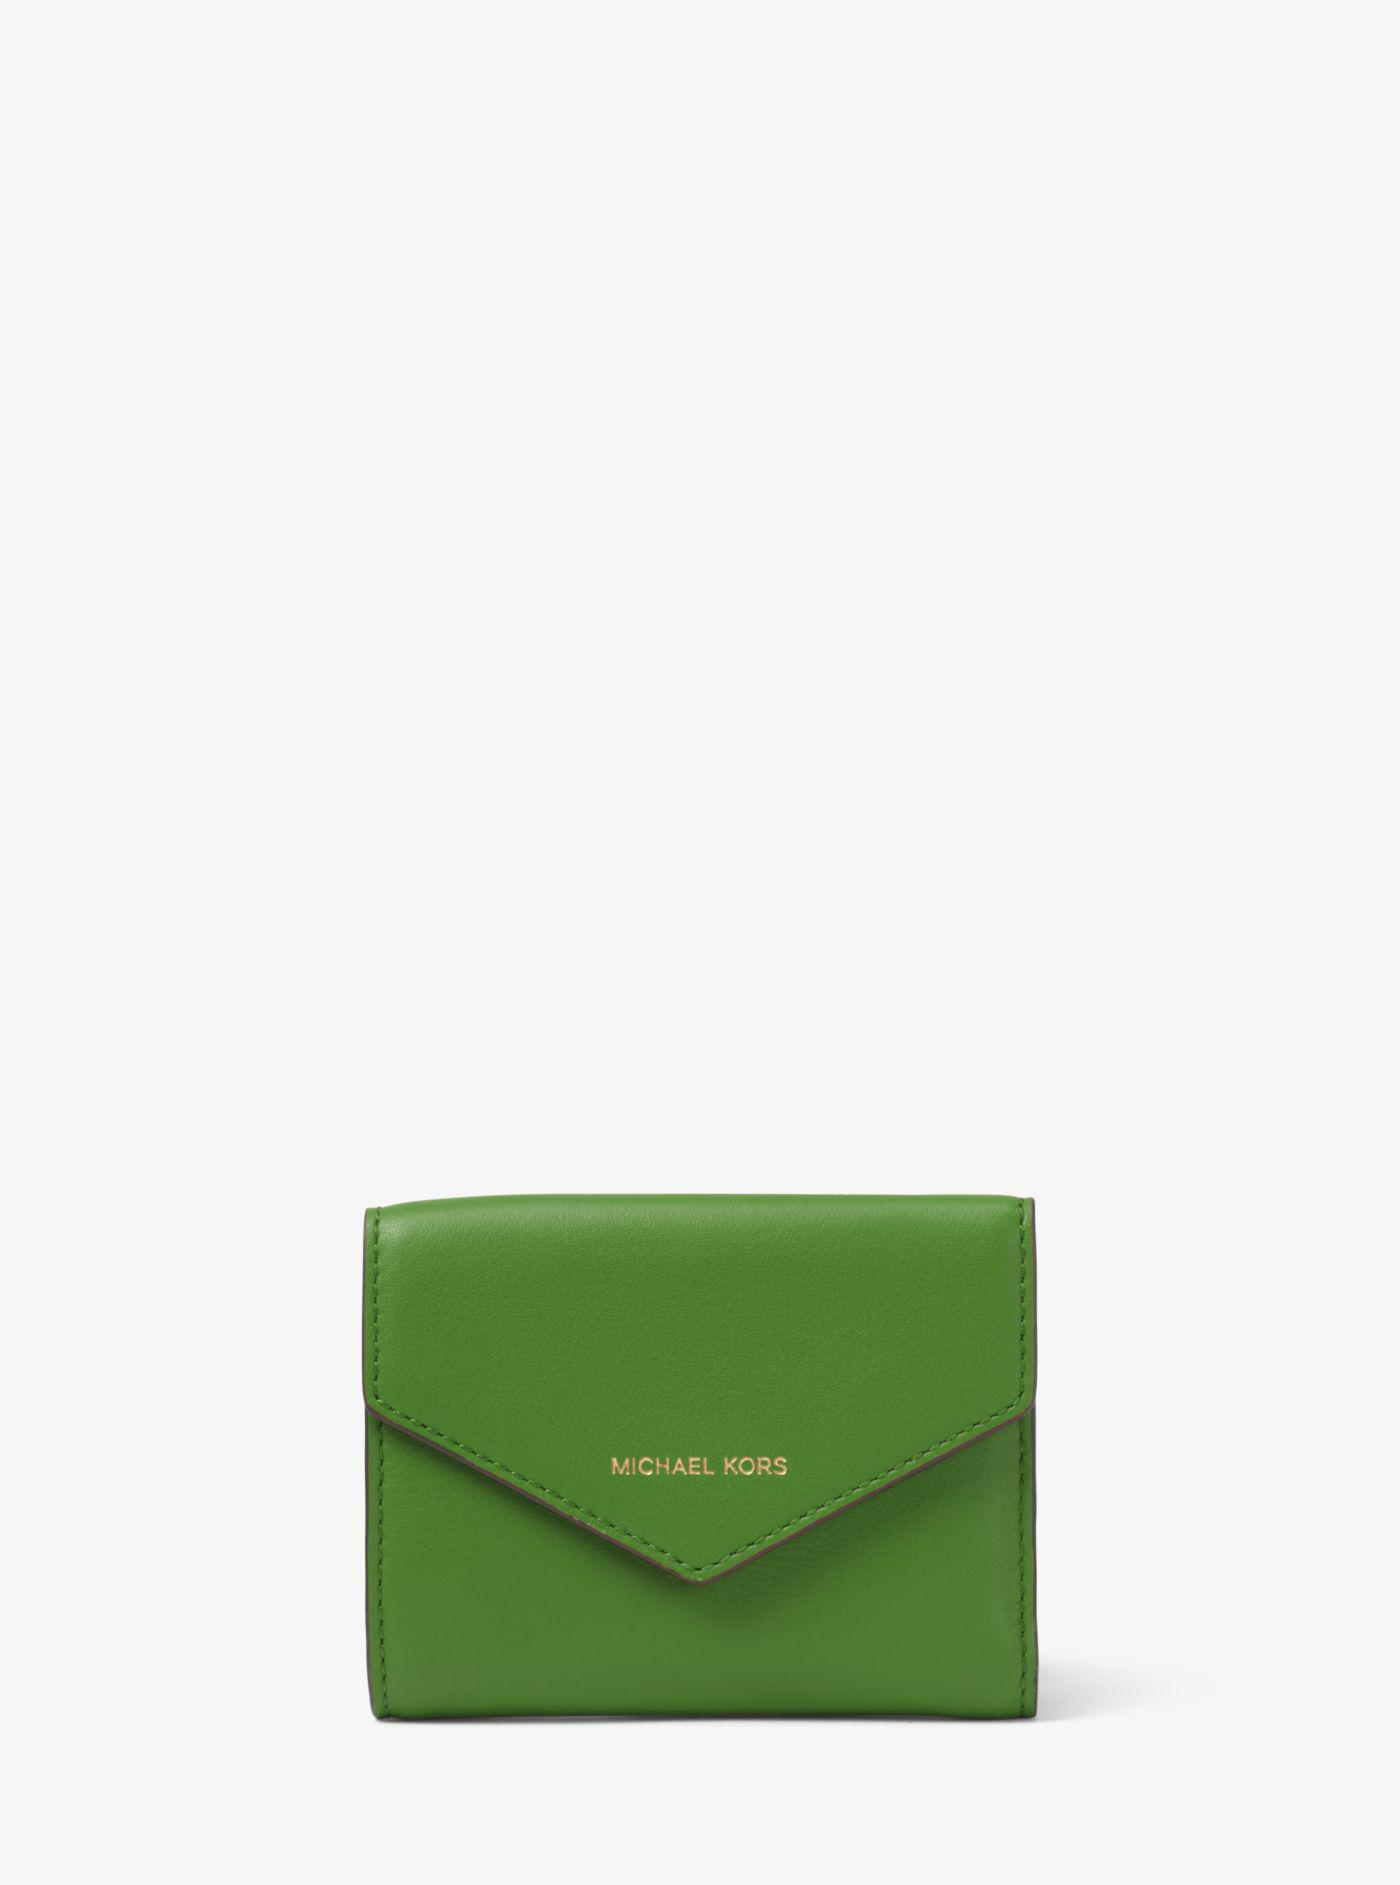 cdb9006184a4 Michael Kors Small Leather Envelope Wallet in Green - Lyst